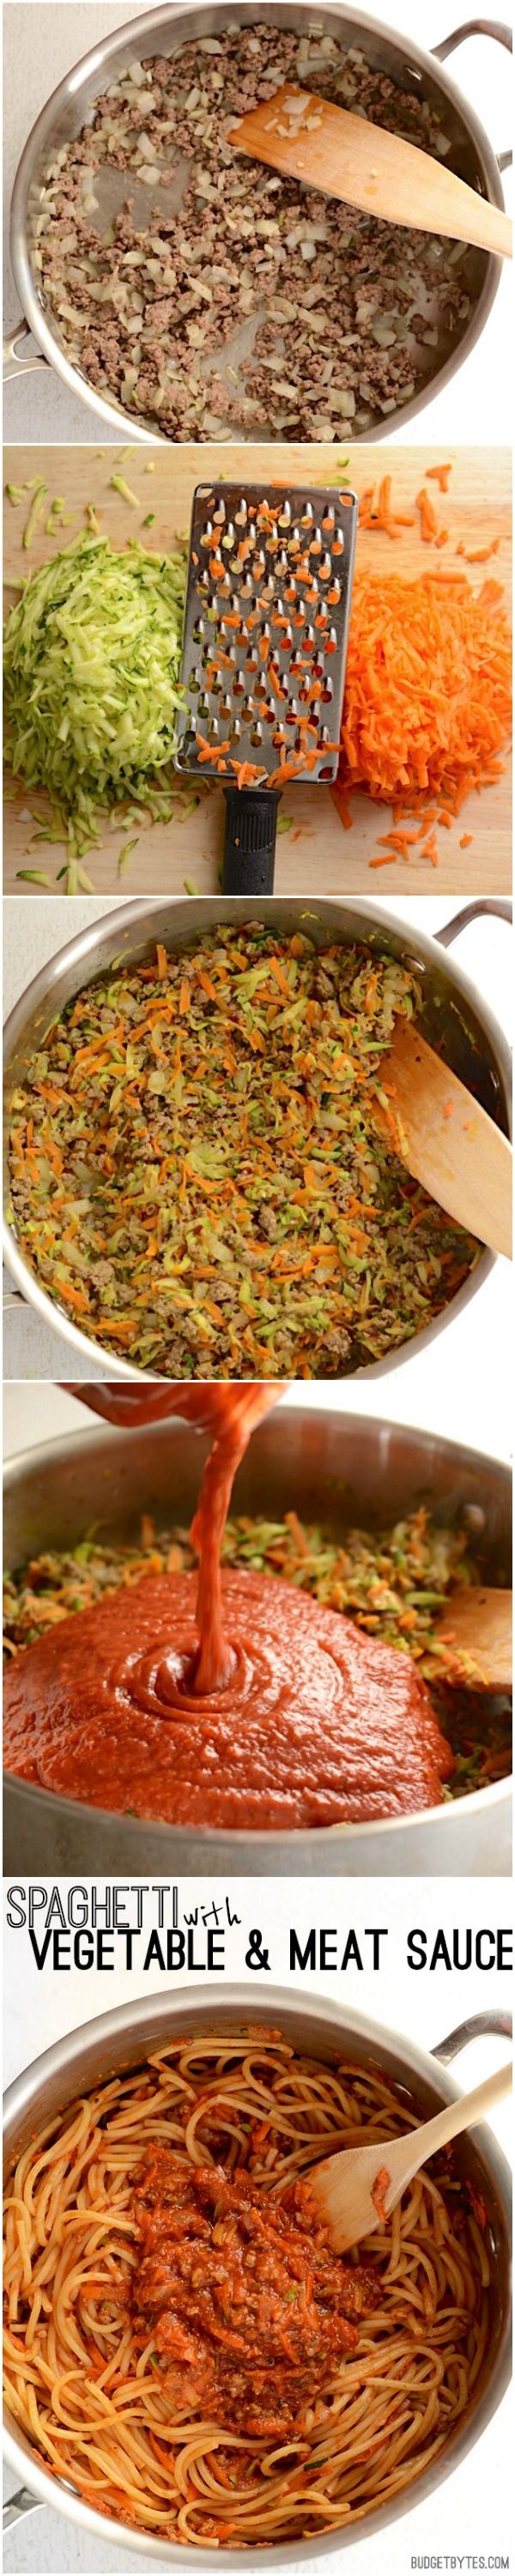 Take basic jarred pasta sauce up a notch with a medley of shredded vegetables and extra herbs and spices. Spaghetti with Vegetable and Meat Sauce - BudgetBytes.com